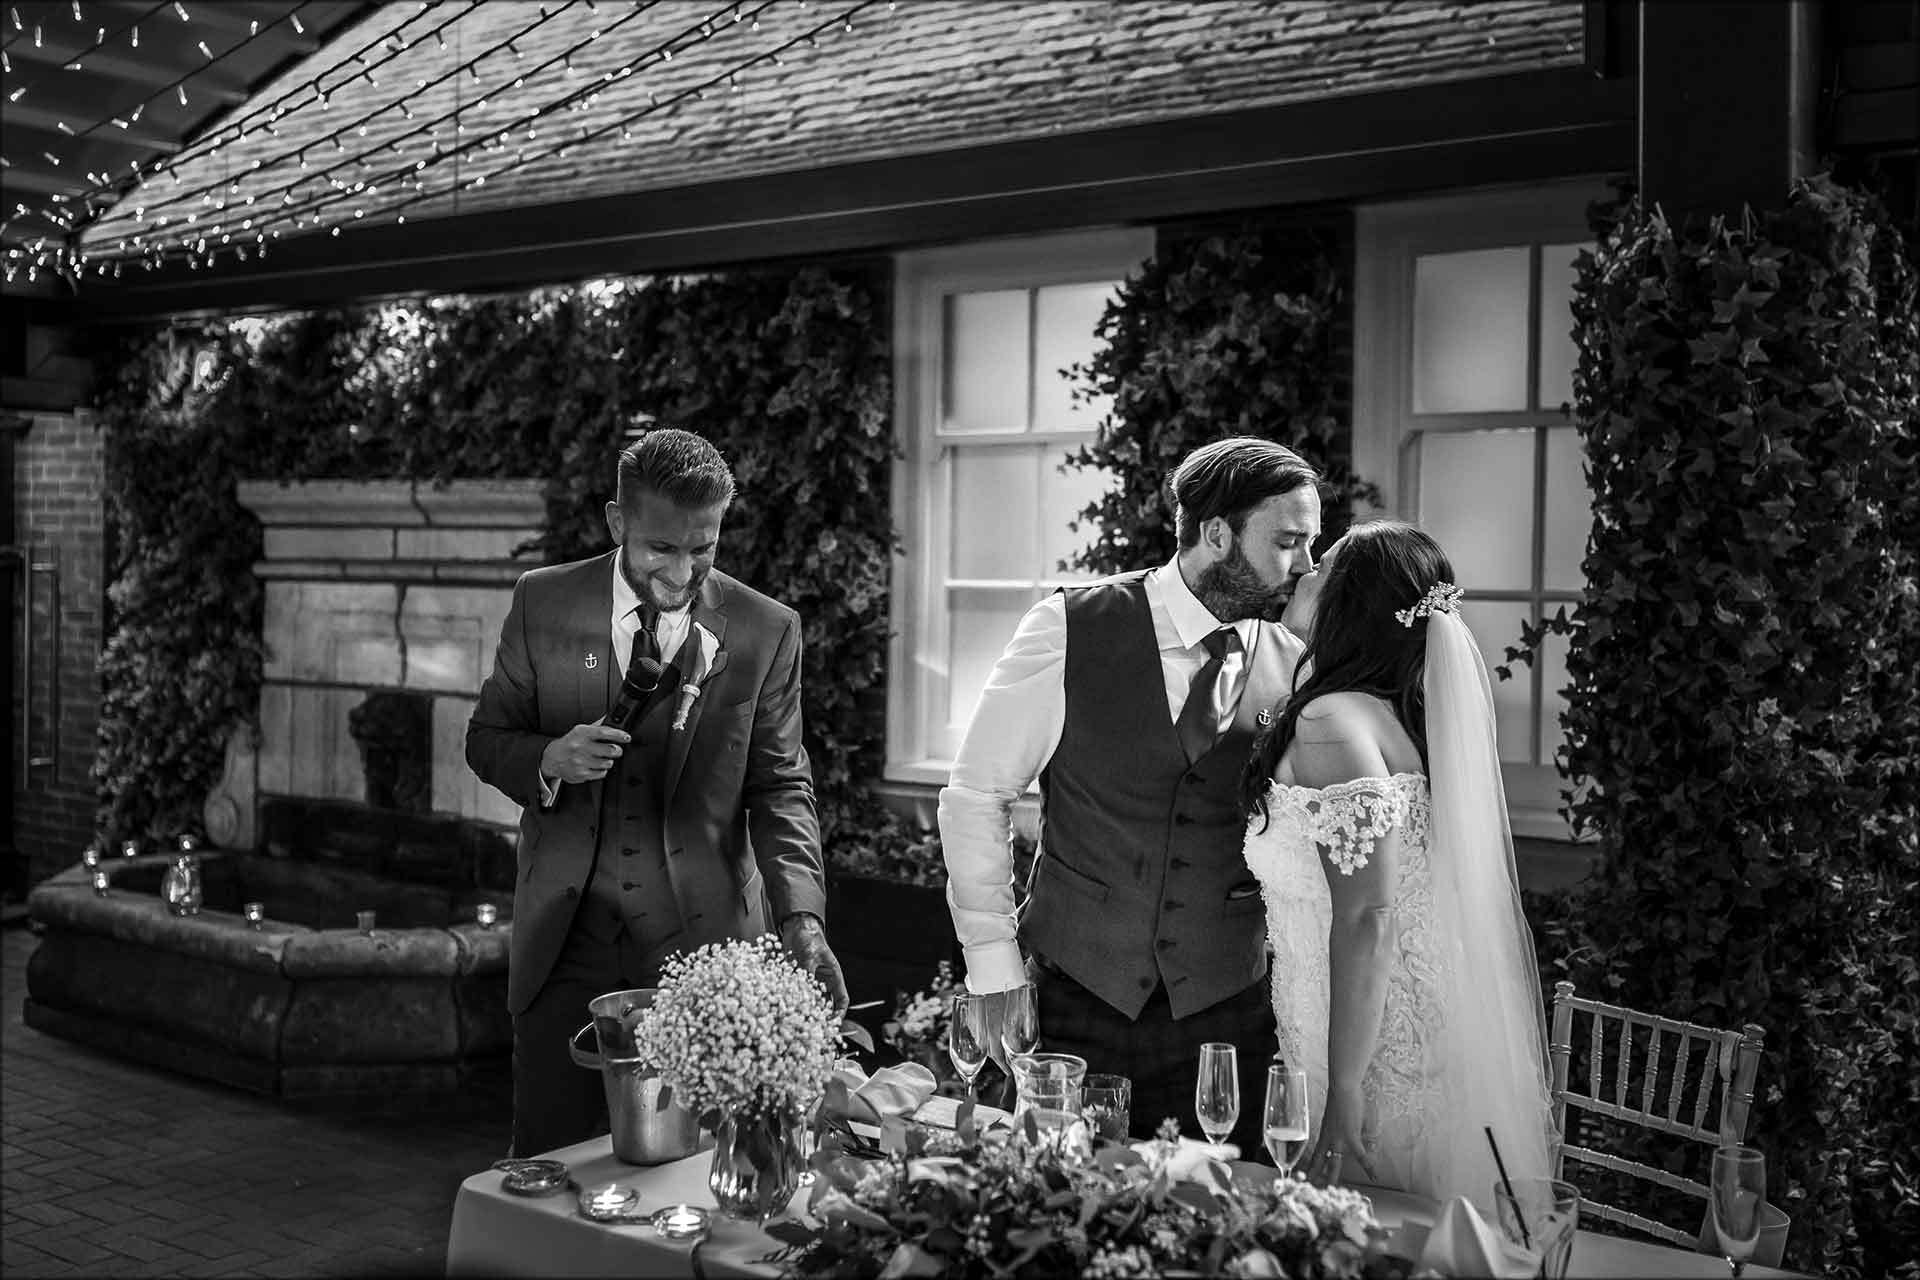 Intimate moment between the bride and groom